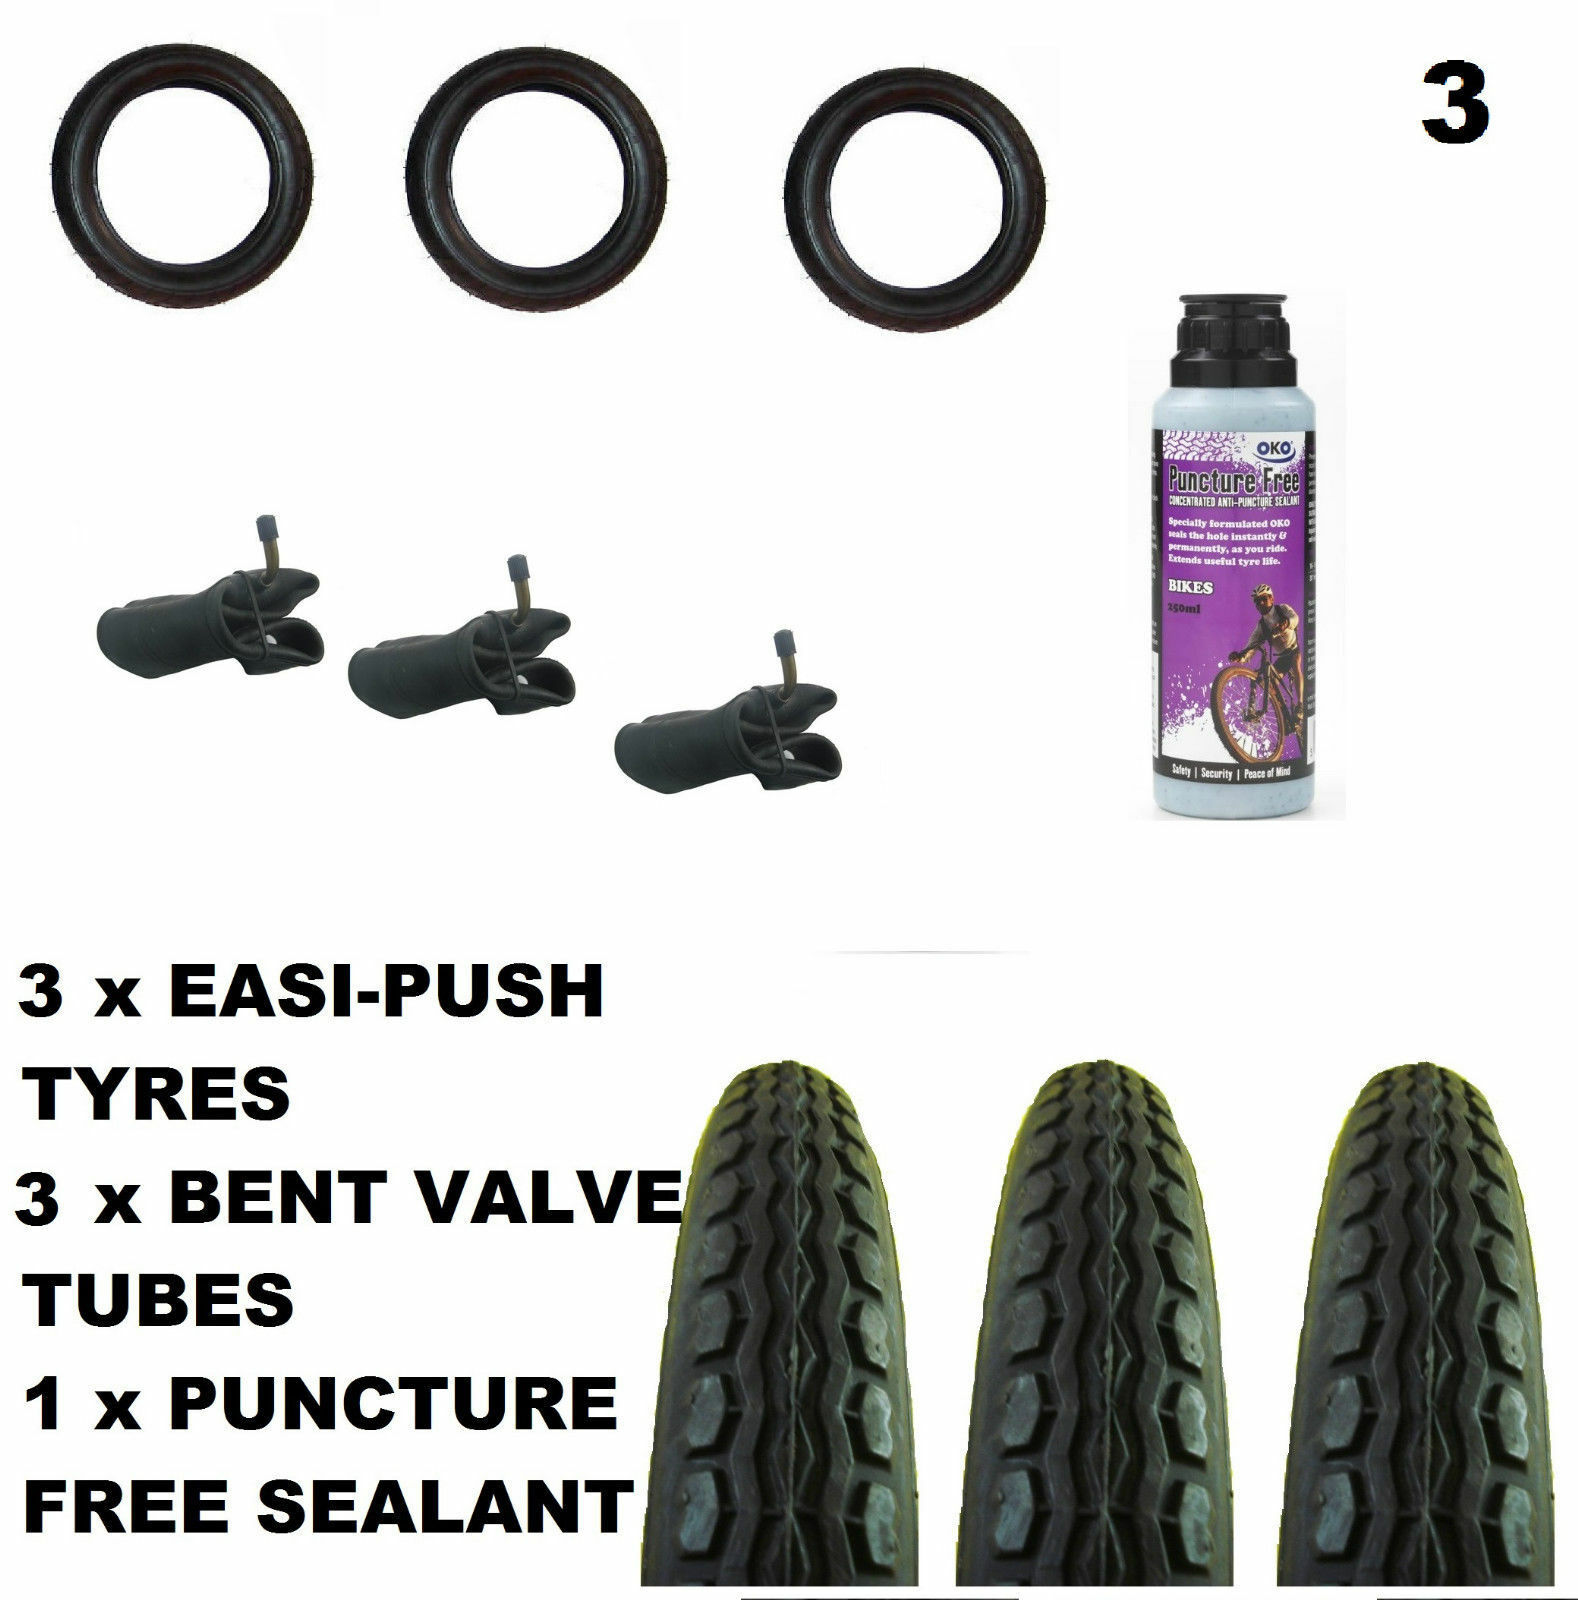 3 x Valco Runabout Pram  TYRES 12 1 2  x 2 1 4 + Bent tubes + Puncture Sealant  is discounted